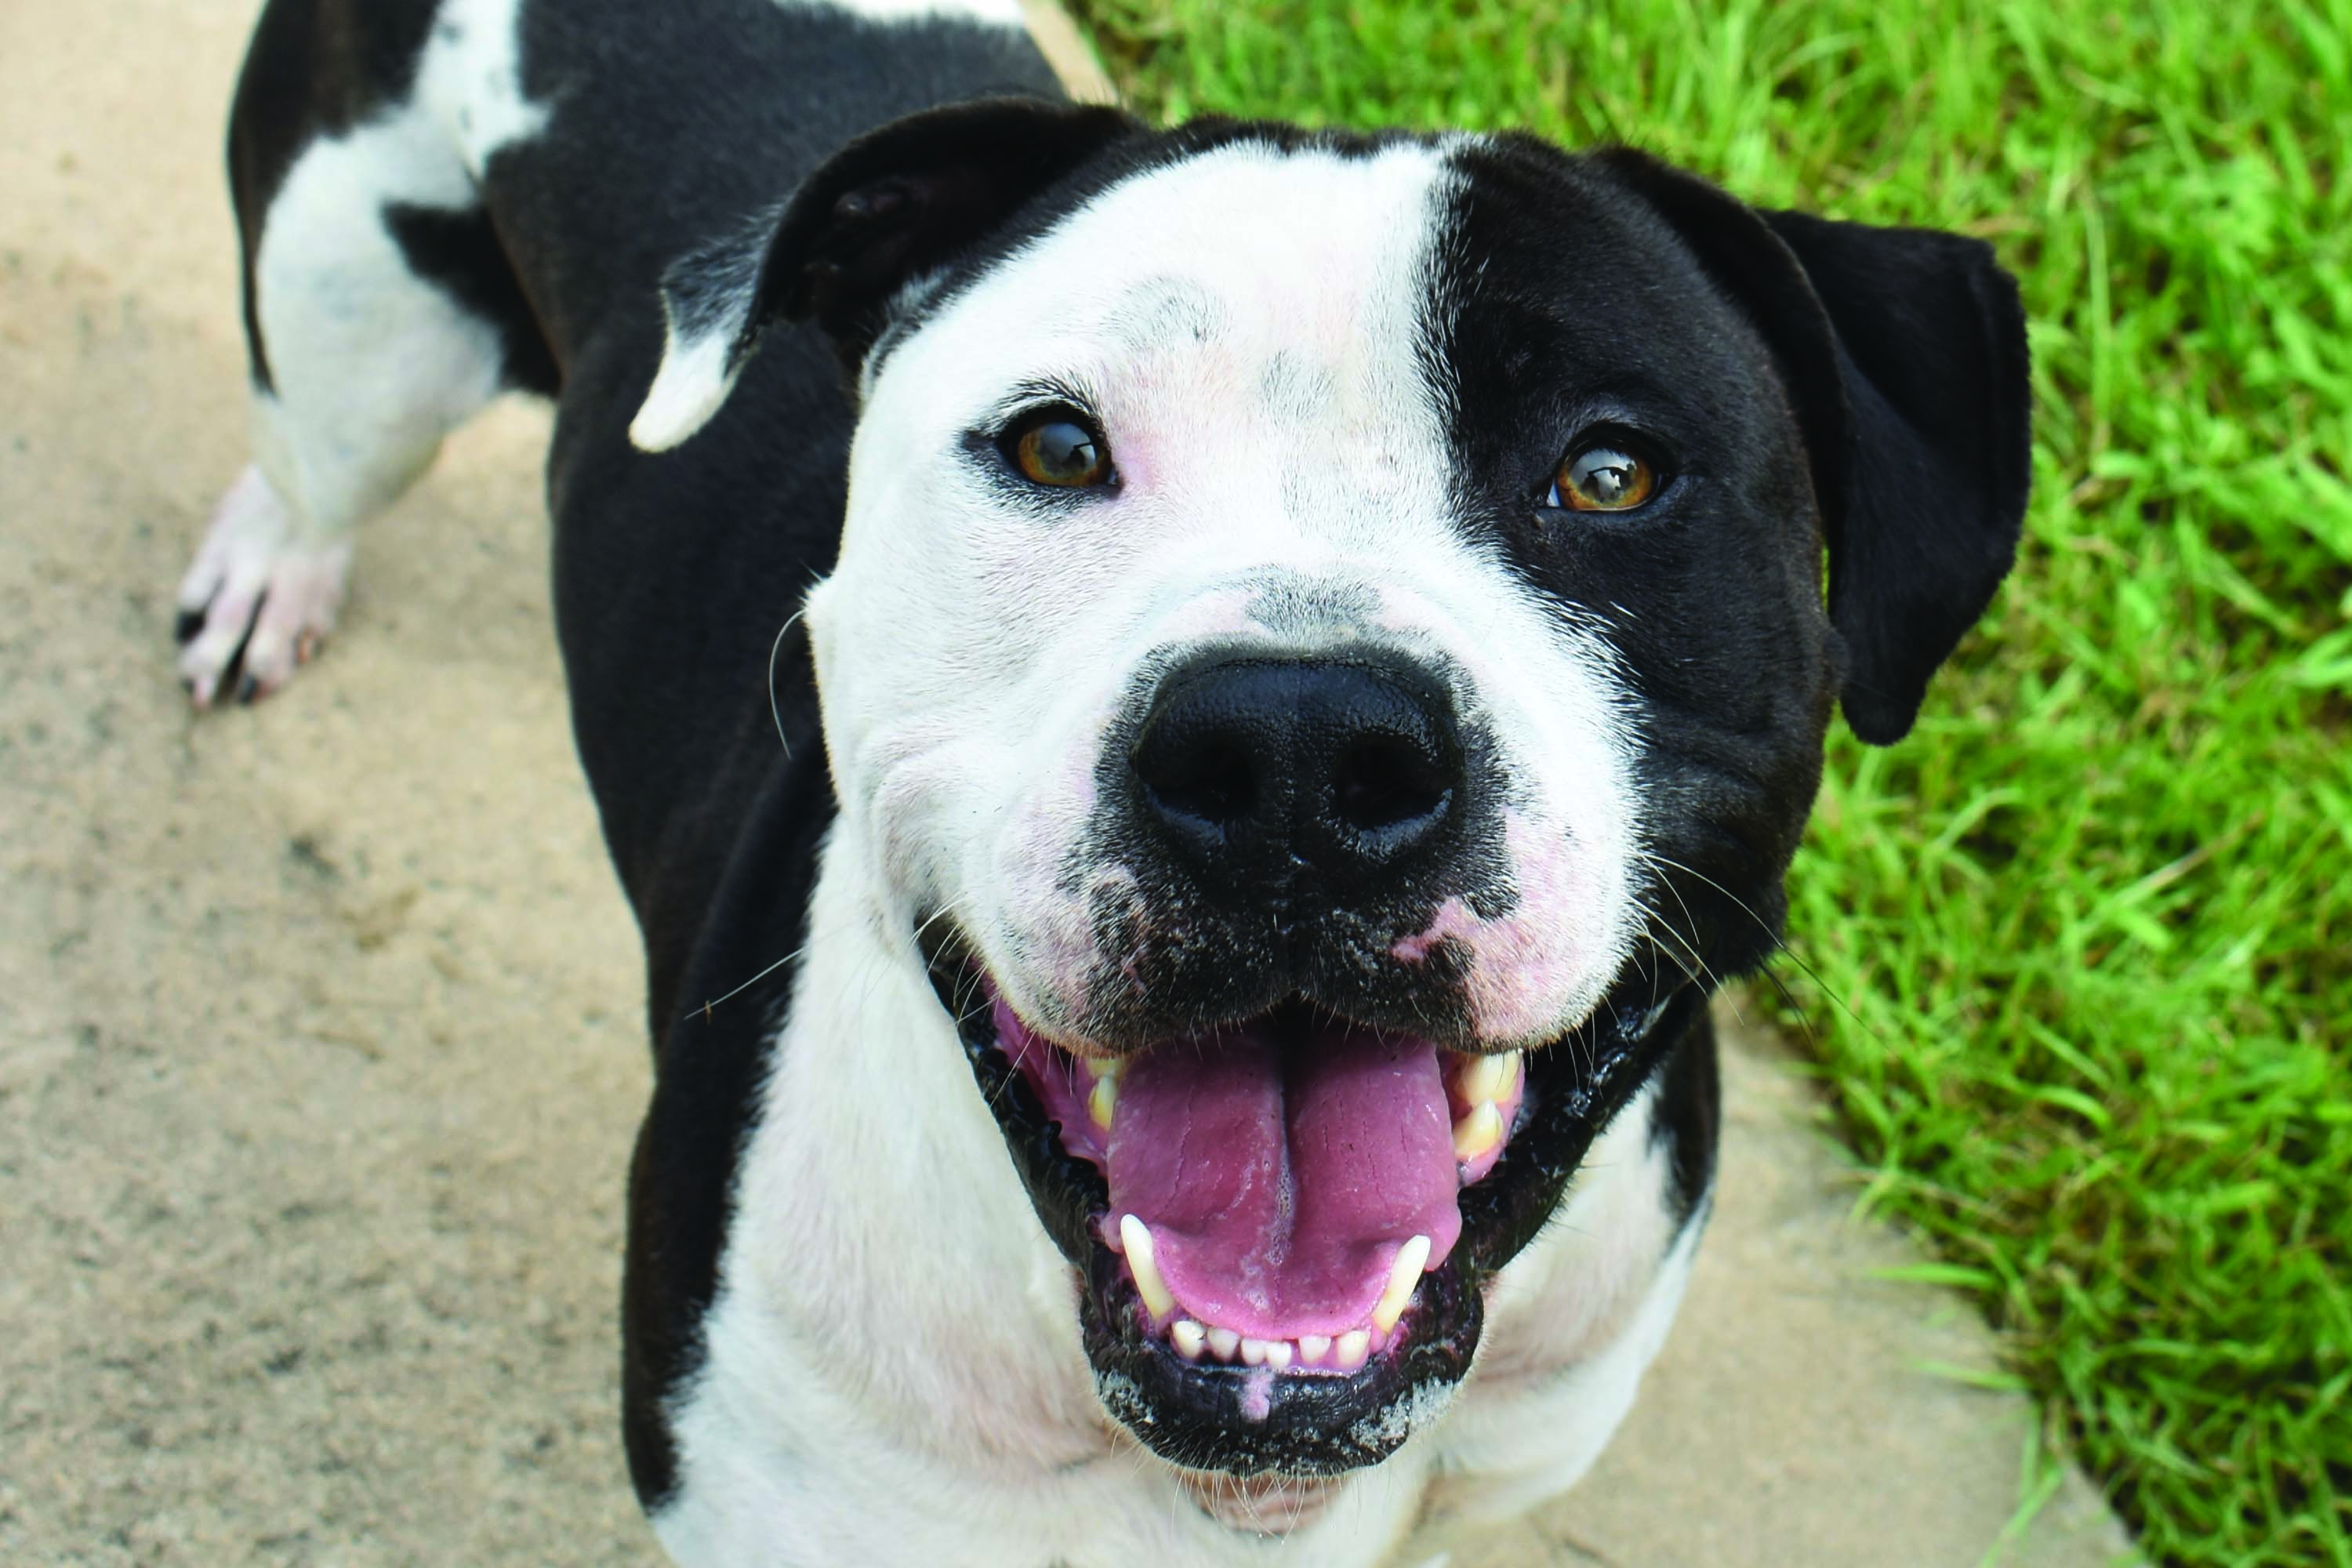 City of LaGrange Animal Services Receives $10,000 Grant to Help Save More Animals